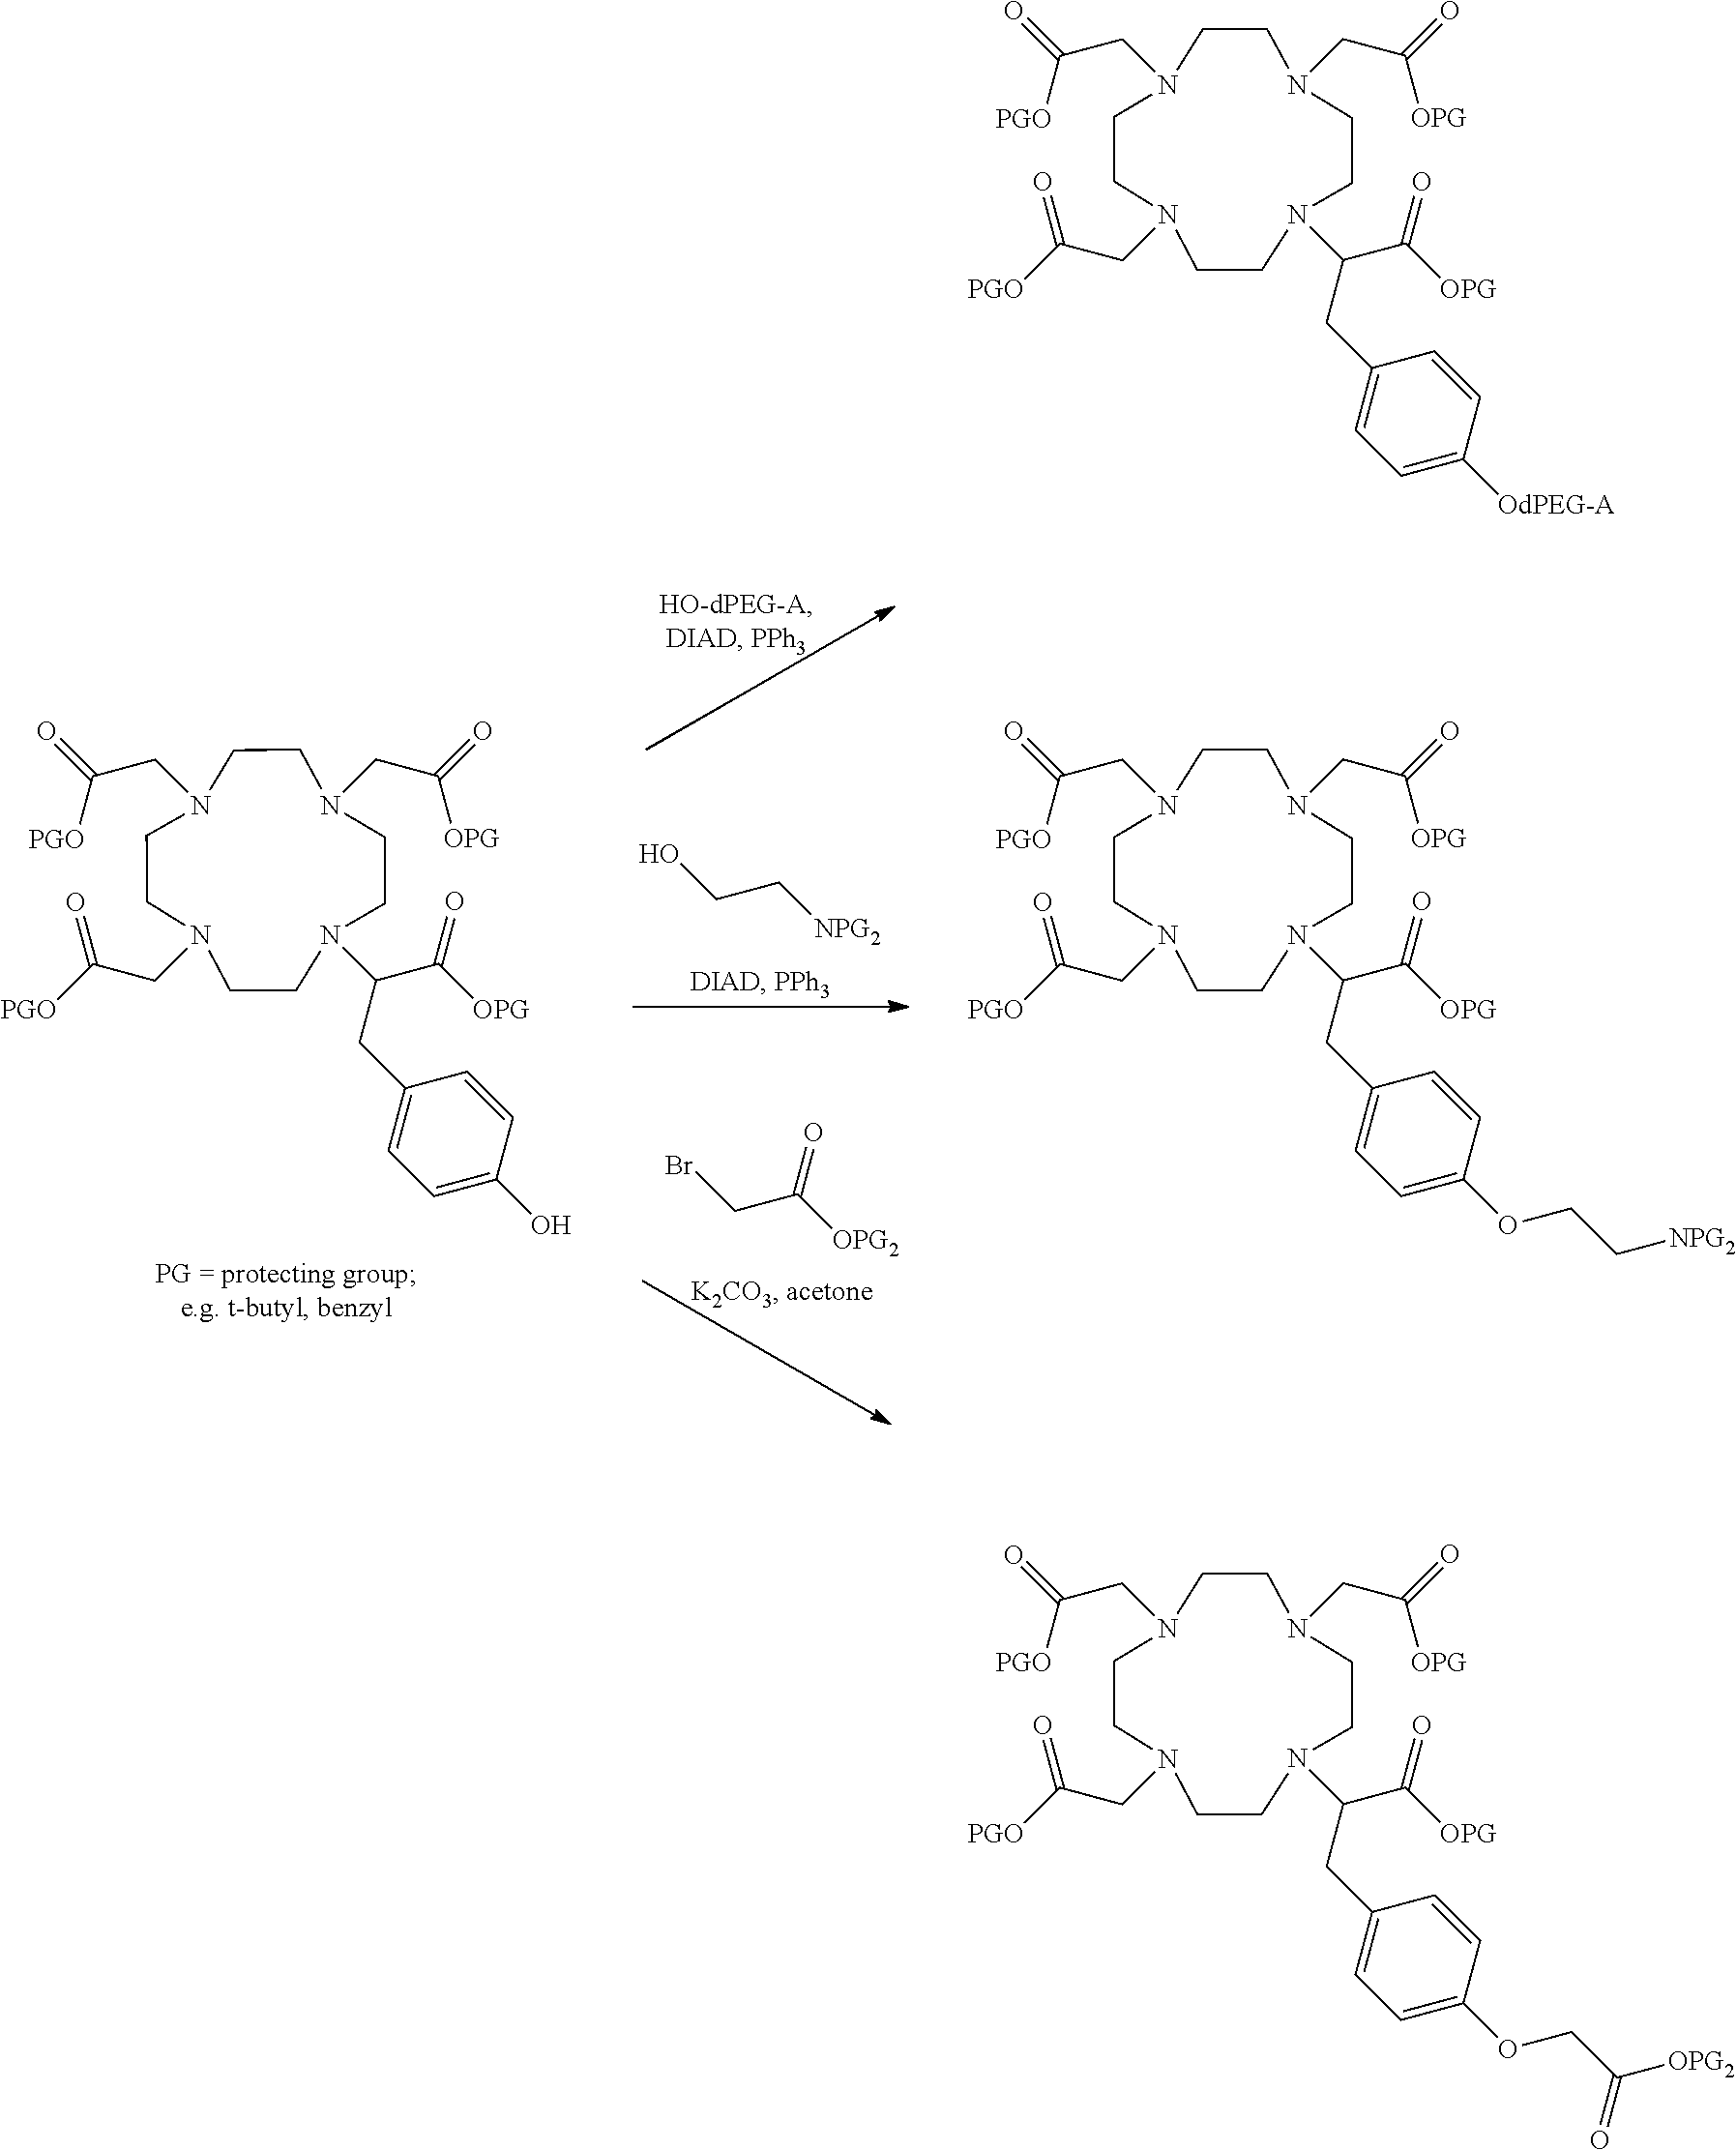 us20170313656a1 branched discrete peg constructs patents Resume Entry Level Chemistry figure us20170313656a1 20171102 c00036